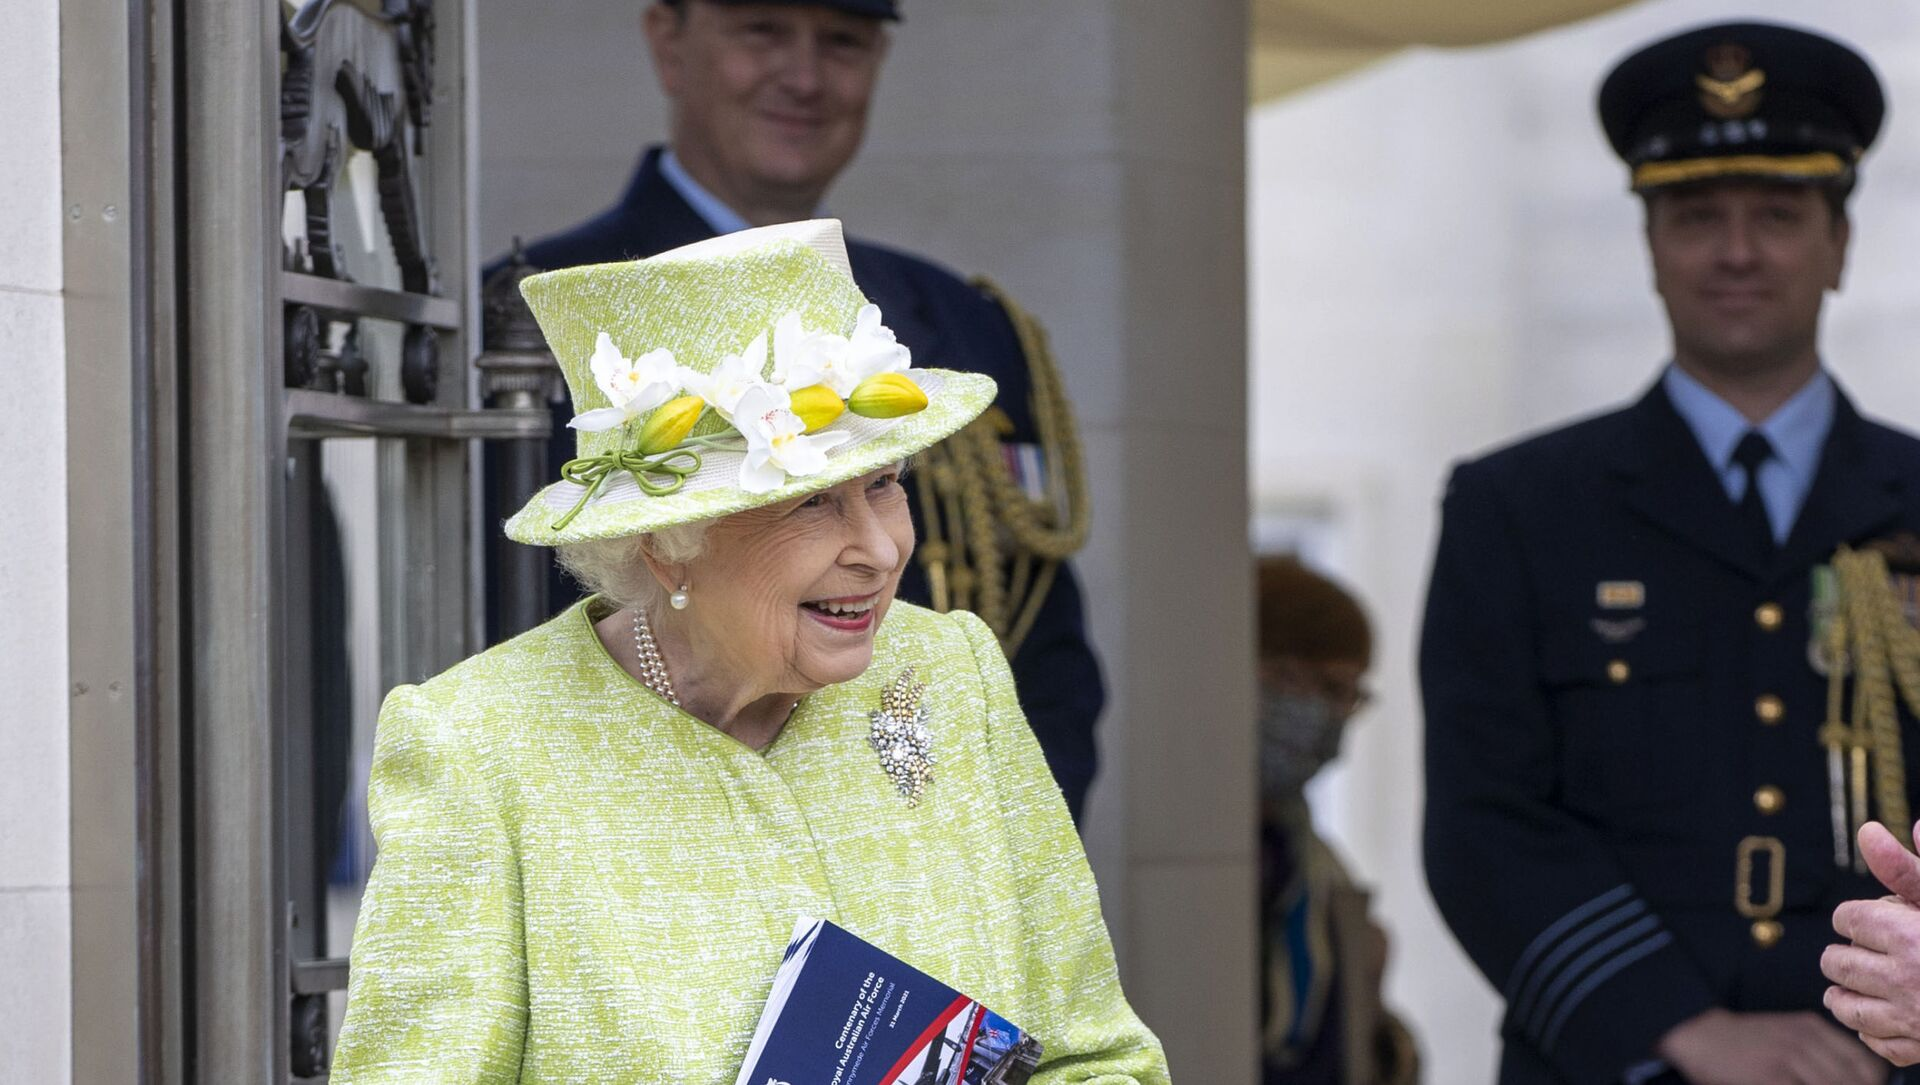 Britain's Queen Elizabeth II during a visit to the CWGC, the Commonwealth War Graves Commission Air Forces Memorial to attend a service to mark the Centenary of the Royal Australian Air Force, in Runnymede, England, Wednesday March 31, 2021 - Sputnik International, 1920, 02.05.2021